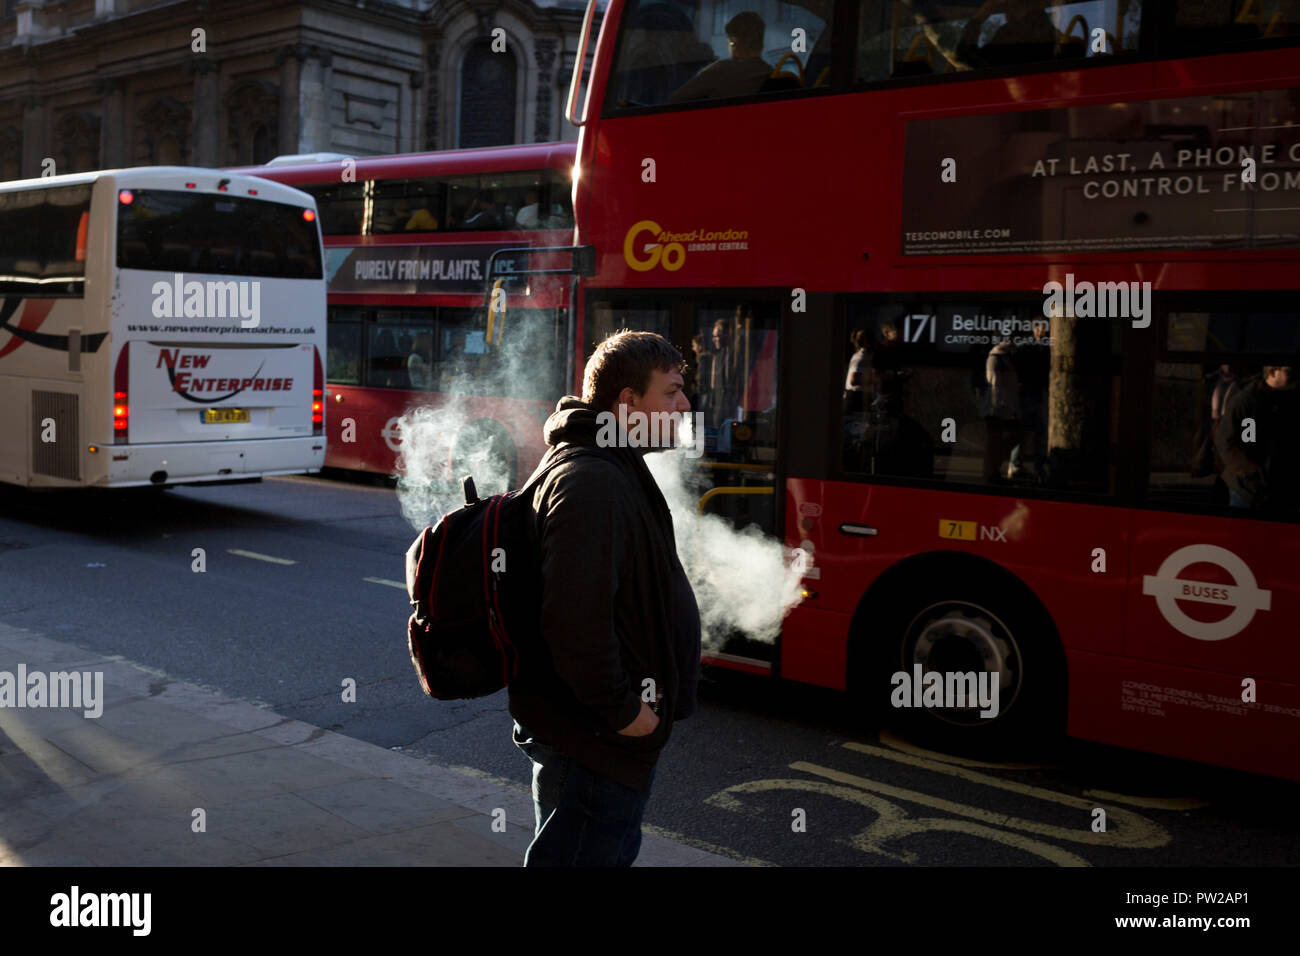 A vaper exhales before boarding a bus during the evening rush-hour in the capital, on 3rd October 2018, in London, England. - Stock Image